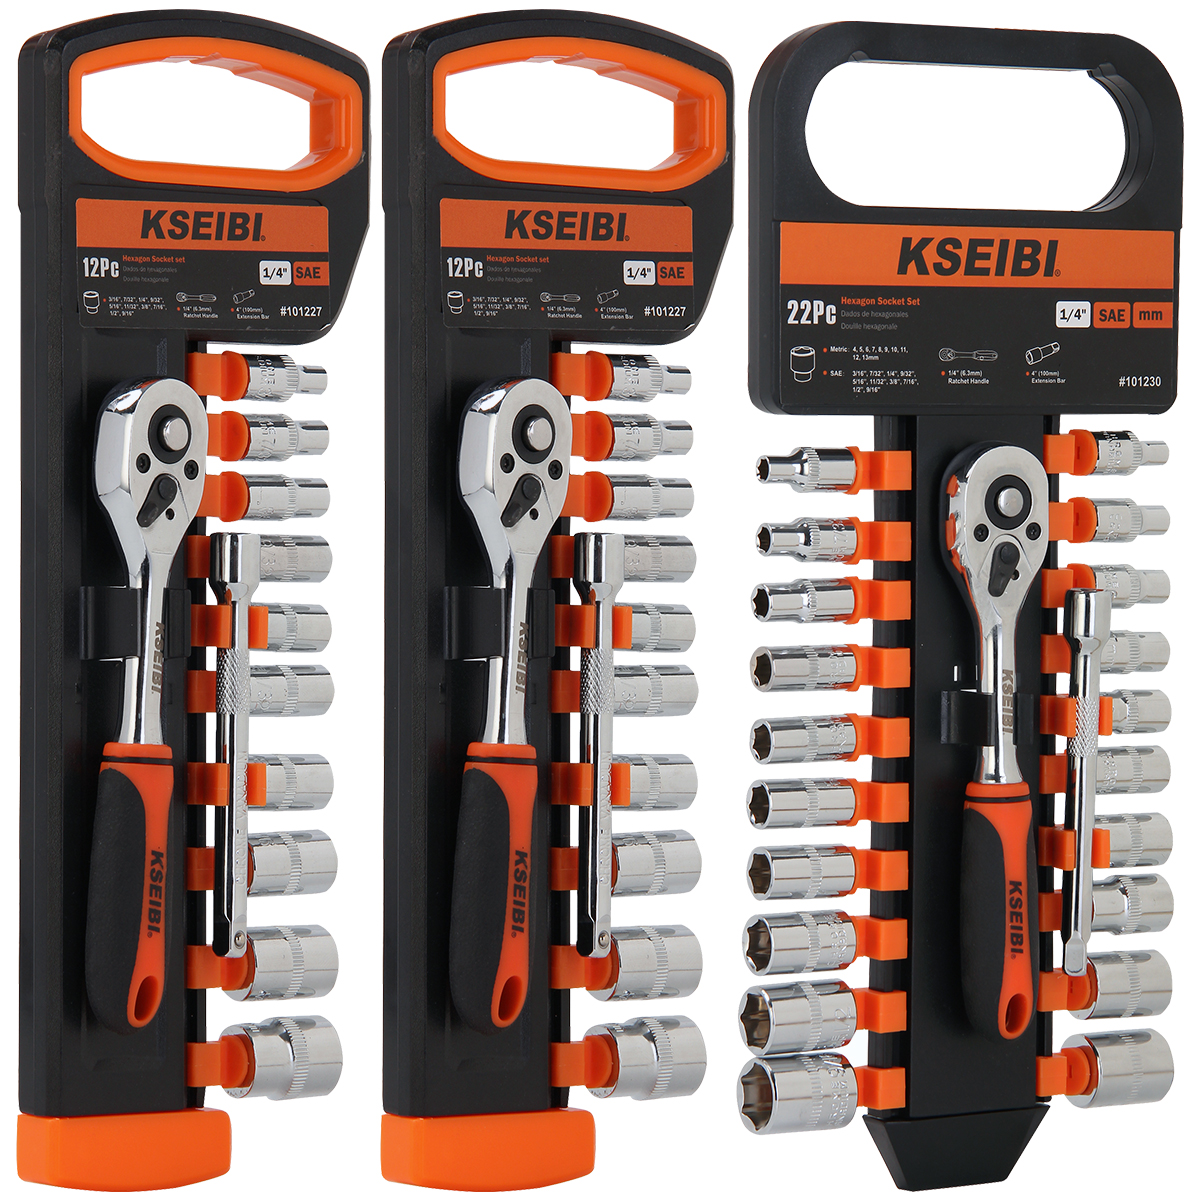 KSEIBI 1/4 In 6.35m Metric And SAE Ratchet Combination Wrench Set Chrome Vanadium Steel Ratchet Drive Socket Set Wrench Tool Kit